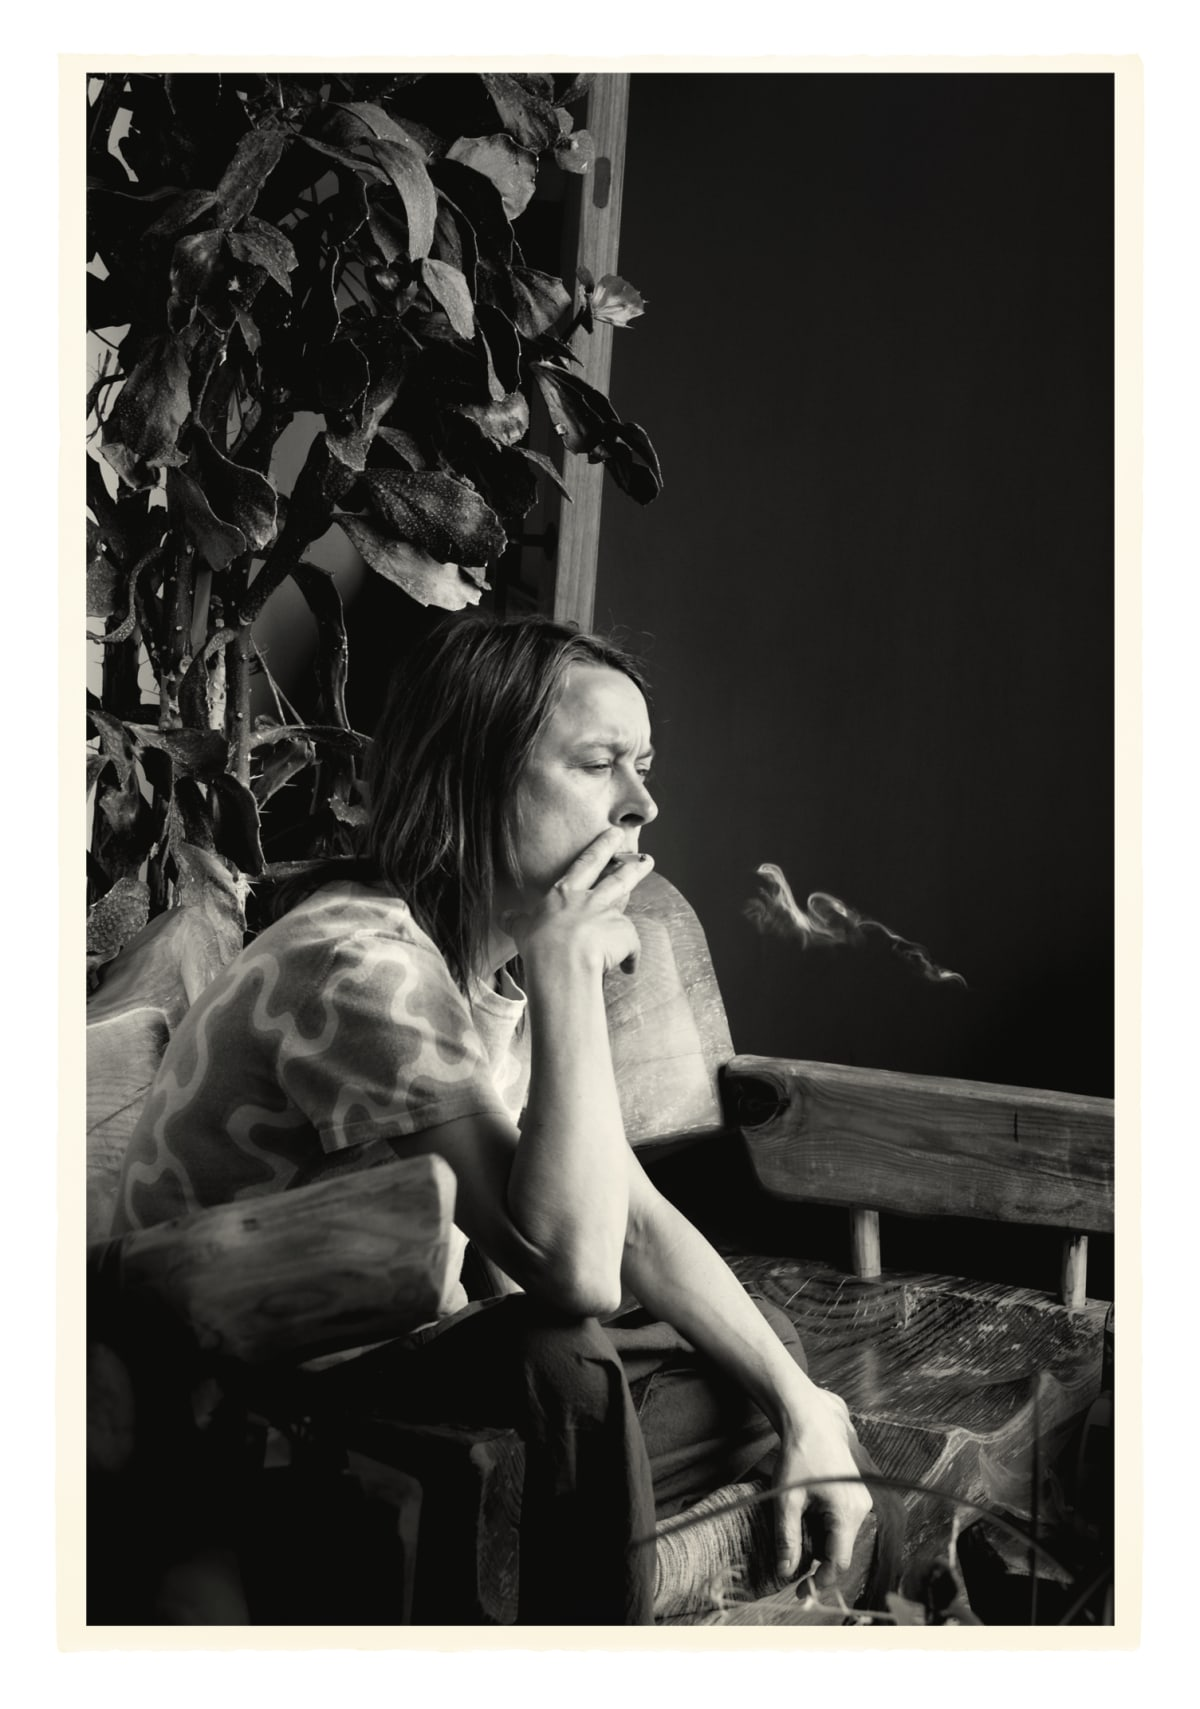 Julian Simmons SARAH SMOKING, 2014 Inkjet print on Velin BFK Rives, 100% cotton rag 280gsm. Signed, numbered and dated on verso. Sheet size: 112.5 x 76.5 cm Edition of 6